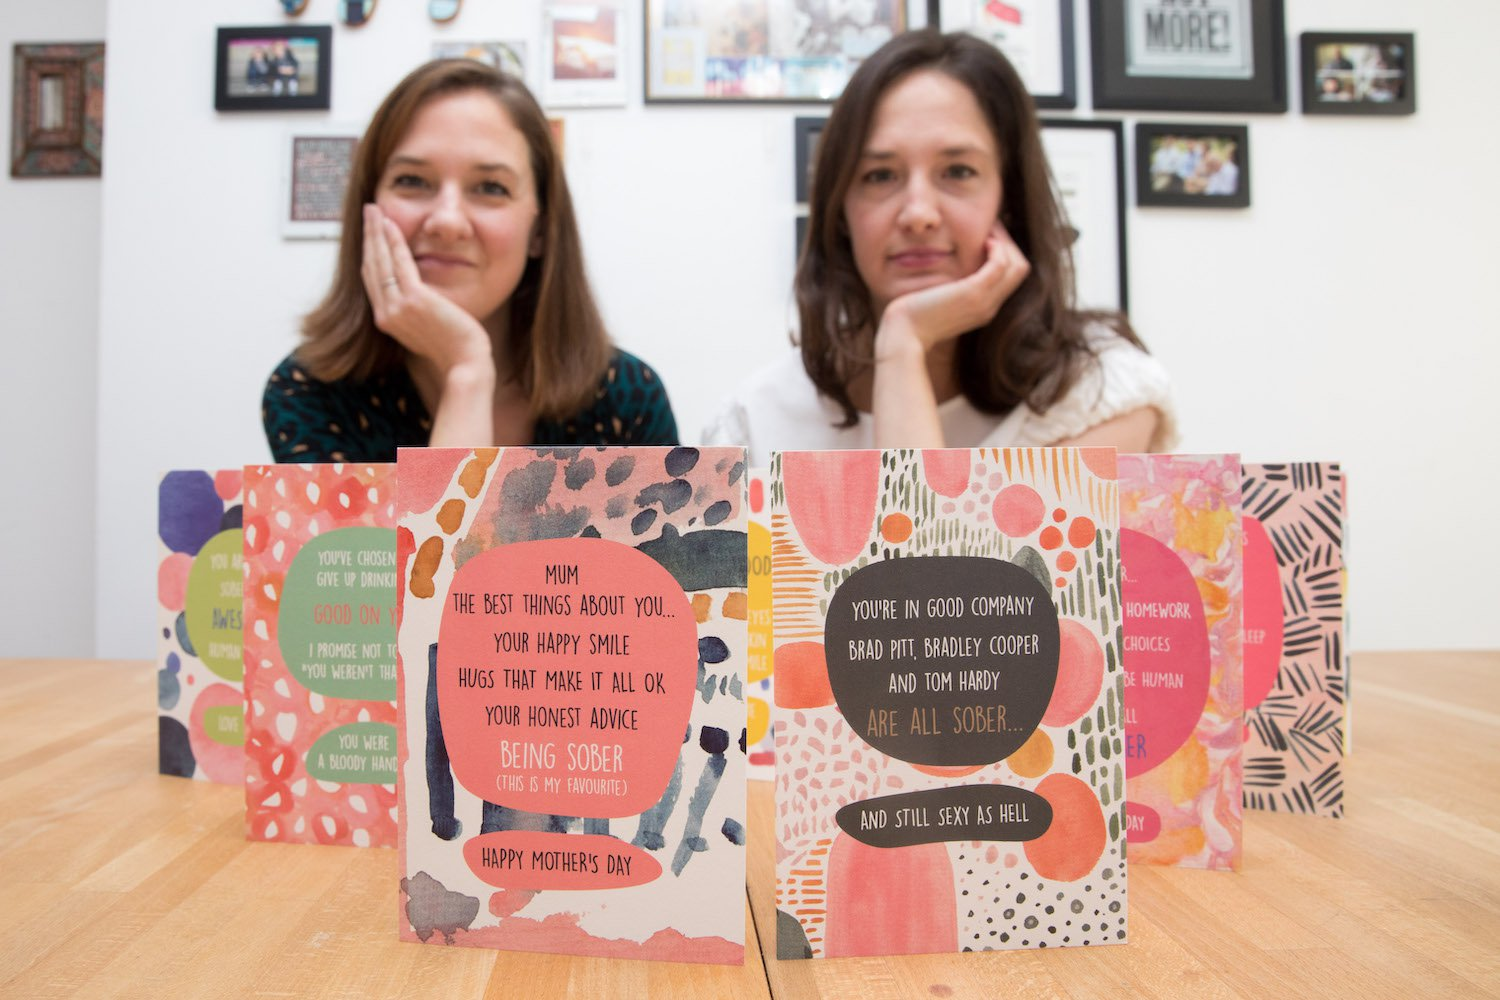 (from right) Sara Bender and Lucy Wilkins with their Sober greeting cards at their home in Holborn, Central London. The cards look to celebrate people's efforts in sobriety which is often overlooked by many card companies. TRIANGLE NEWS 0203 176 5587 // contact@trianglenews.co.uk By Rosaleen Fenton With pix A GREETING card firm has started selling Mother?s Day cards for children to give mums who have given up booze. Founders Lucy Wilkins and Sara Bender run card and gift brand We Are In Good Company which sells cards celebrating sobriety. Many outlets, including high street stalwarts, sell cards featuring messages like ?For my boozy mum. Mother's day delight. *Full copy available via Triangle News*